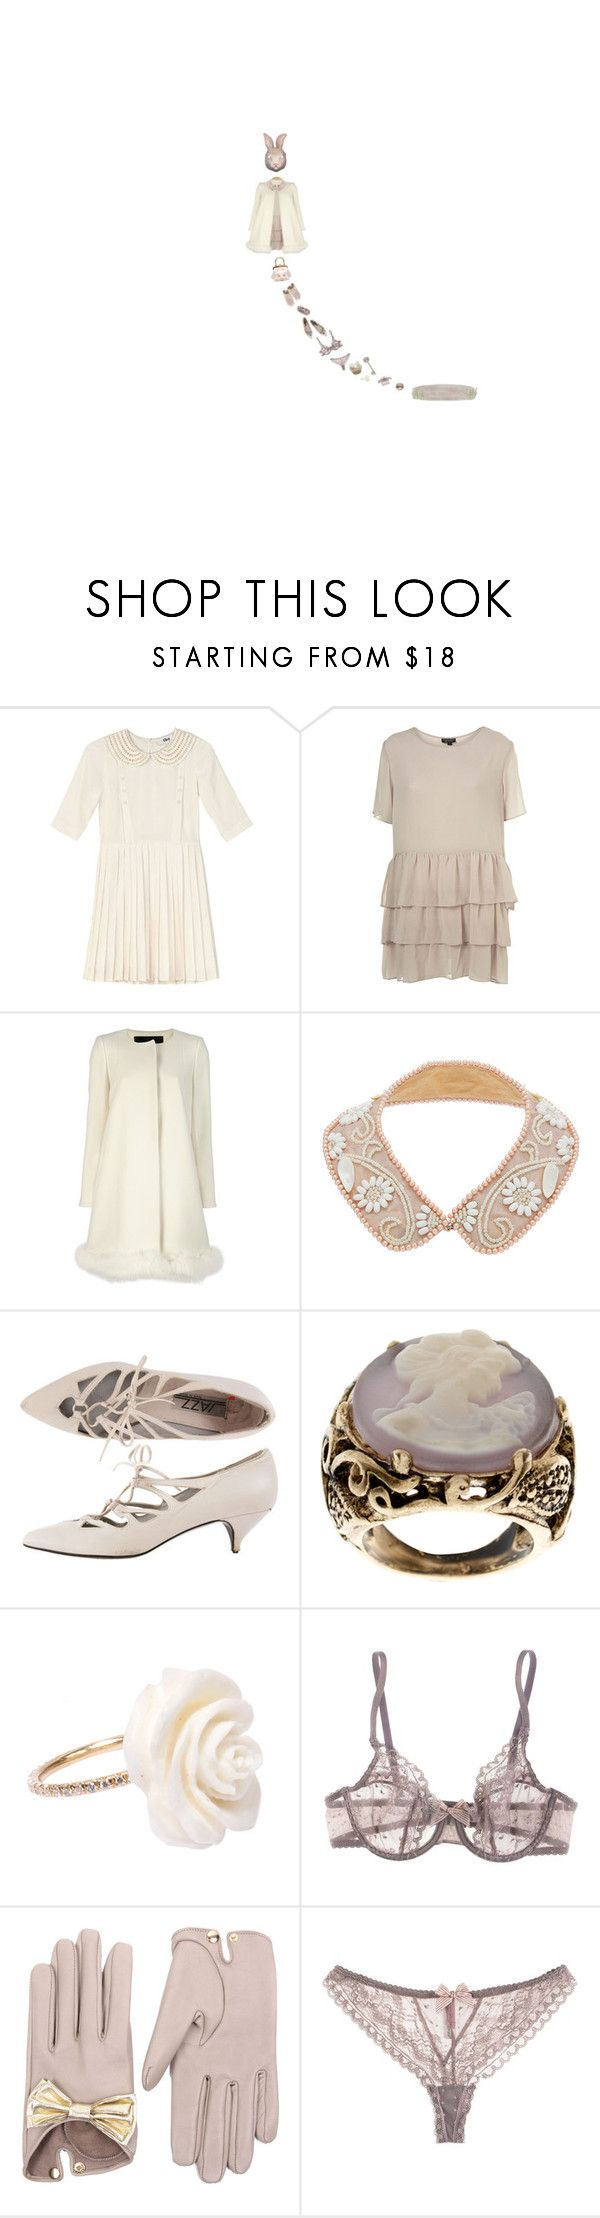 blinded, it's so stunning. by littlewounds on Polyvore featuring To Be Adored, Tara Jarmon, Passionata, American Apparel, ASOS, MONTSE ESTEVE, Causse, Chloé and Miu Miu